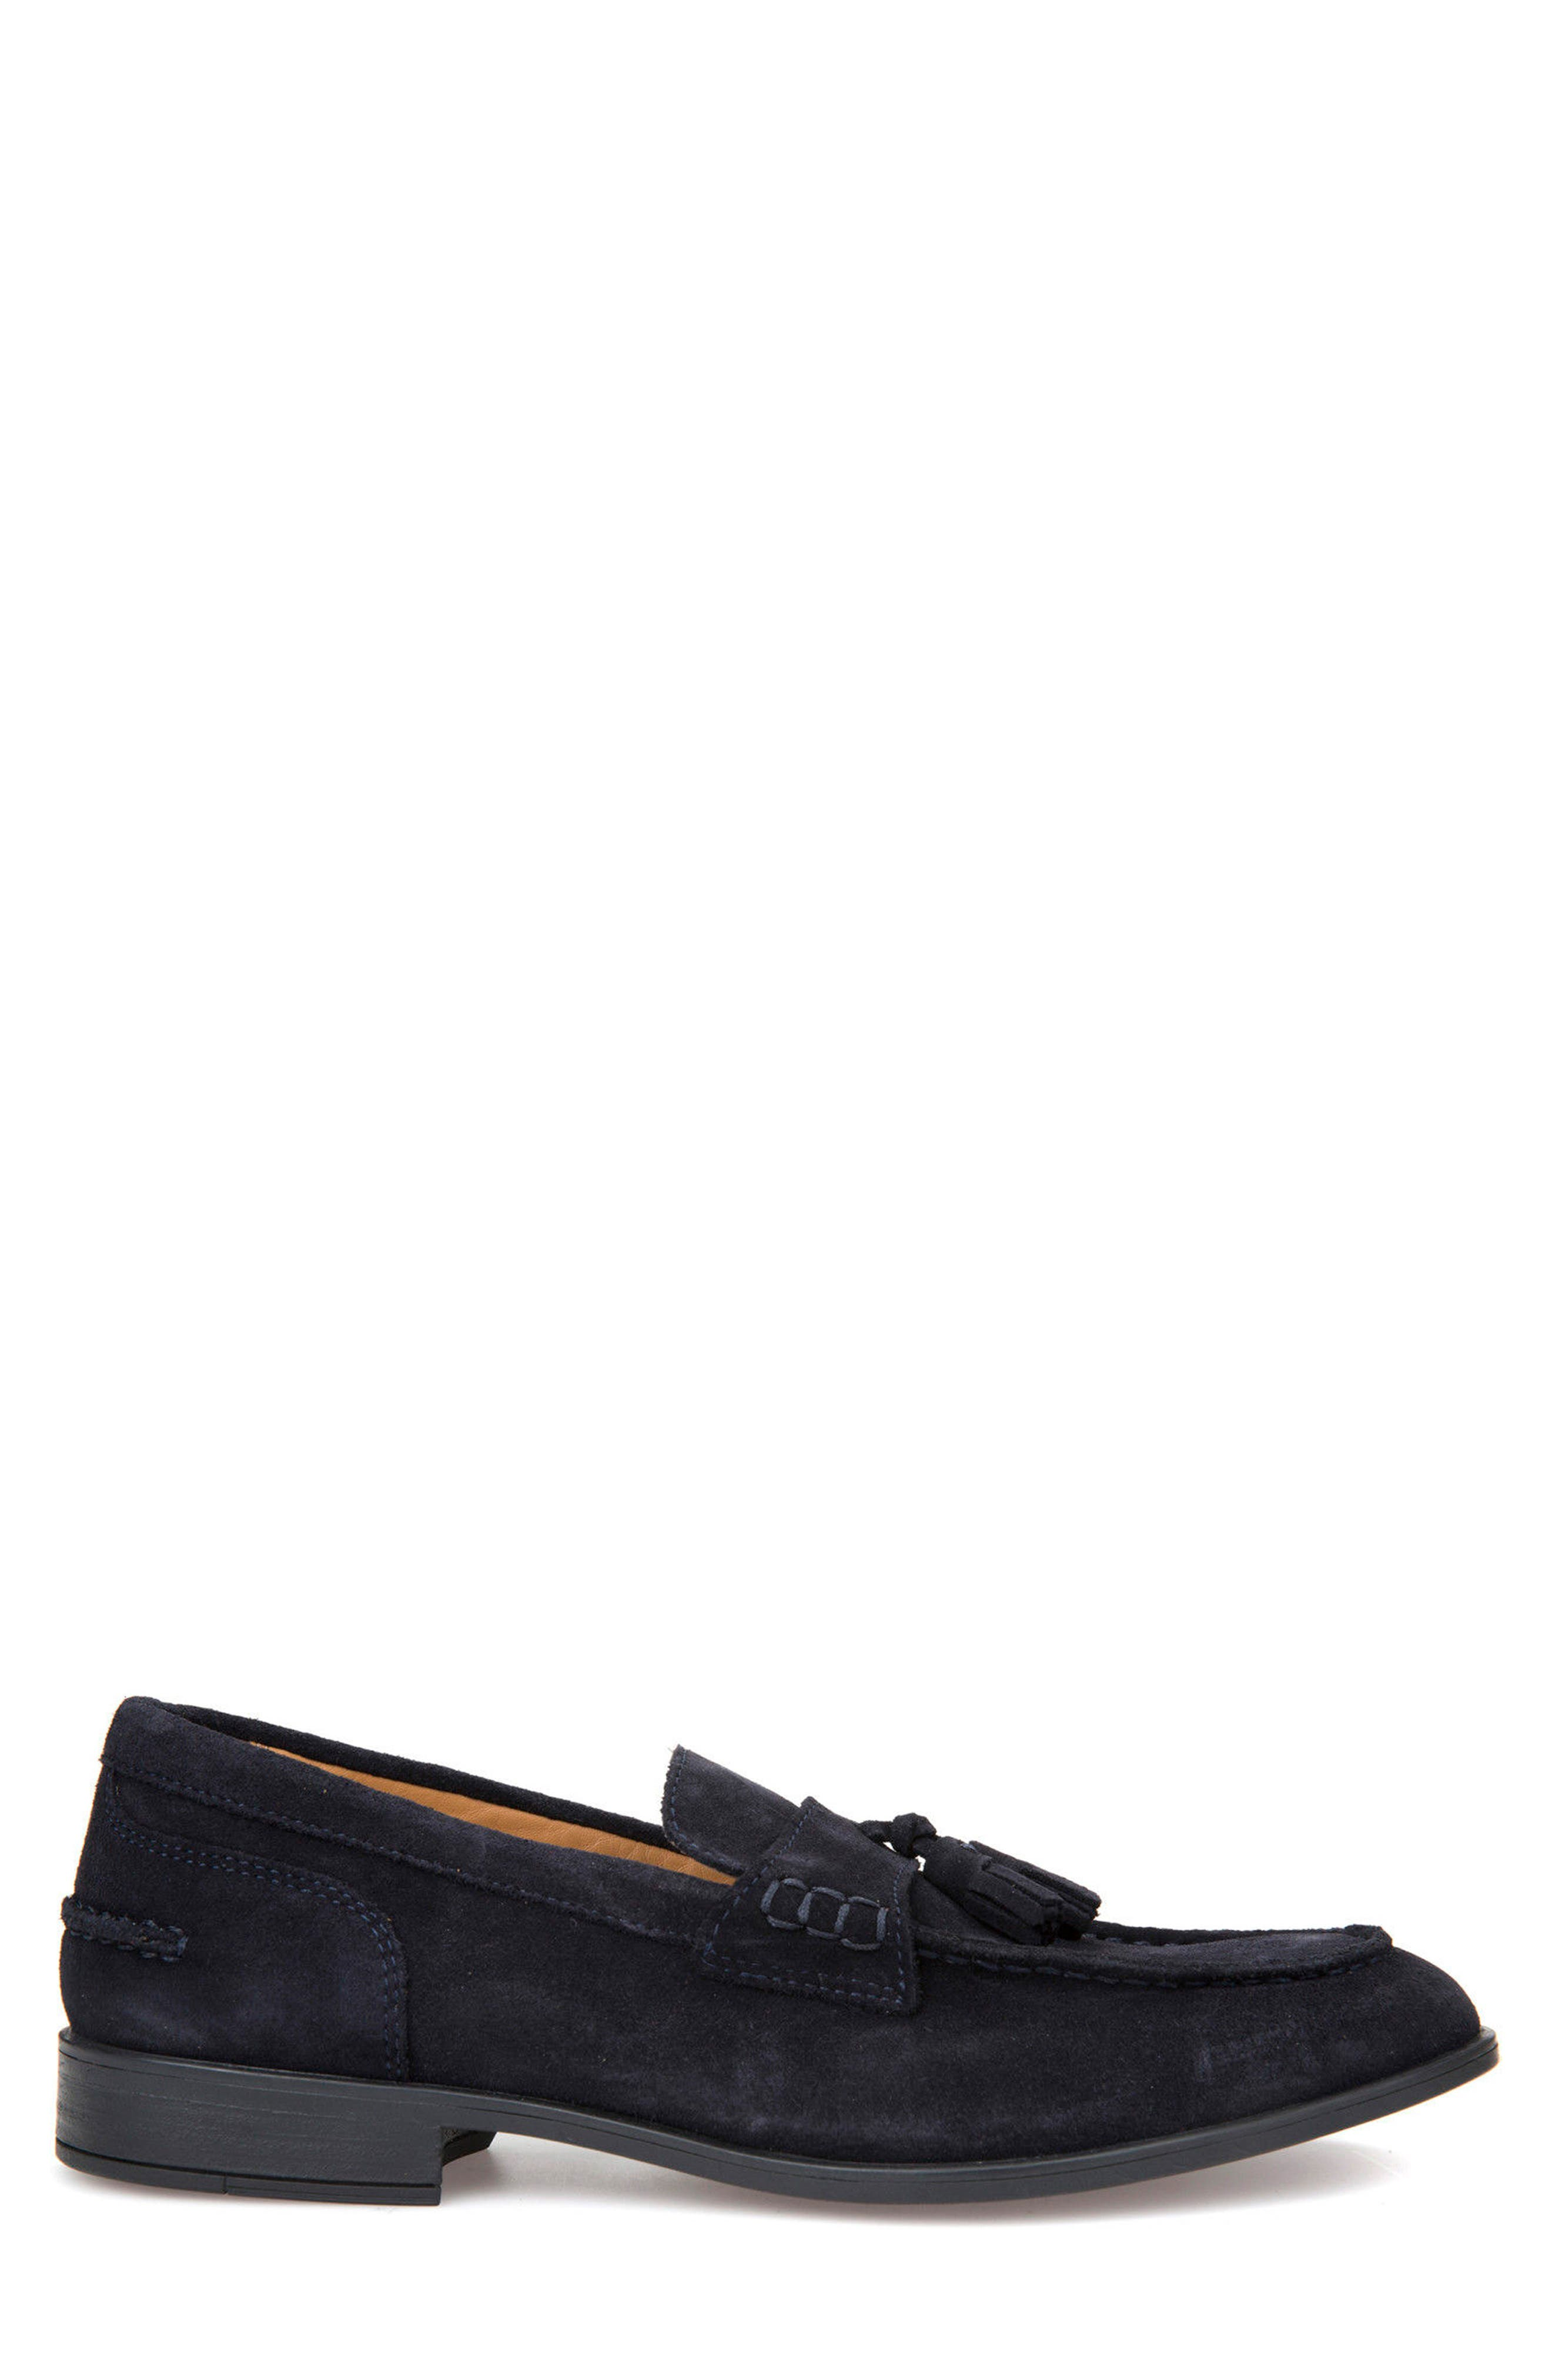 Bryceton 1 Tassel Loafer,                             Alternate thumbnail 3, color,                             Navy Suede